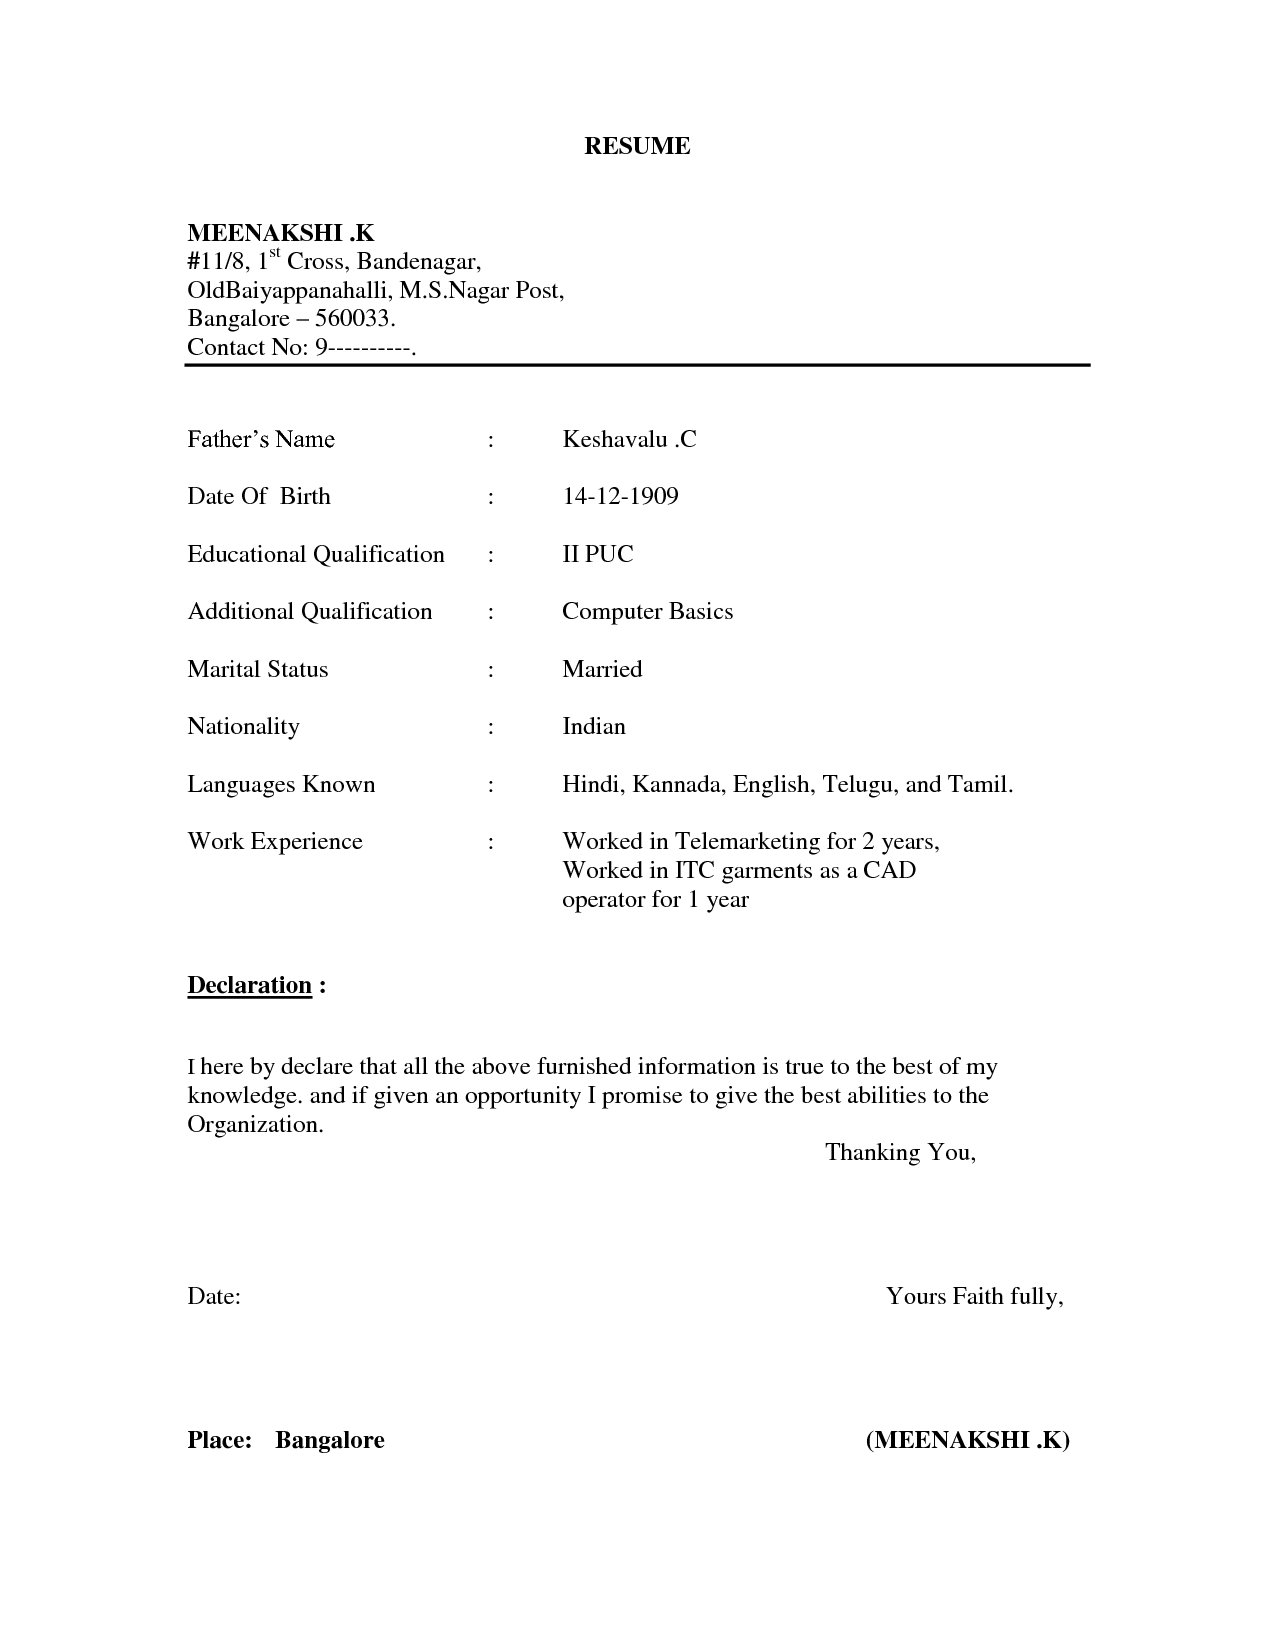 Resume Layout Word Resume Format Doc File Download Resume Format Doc File Download